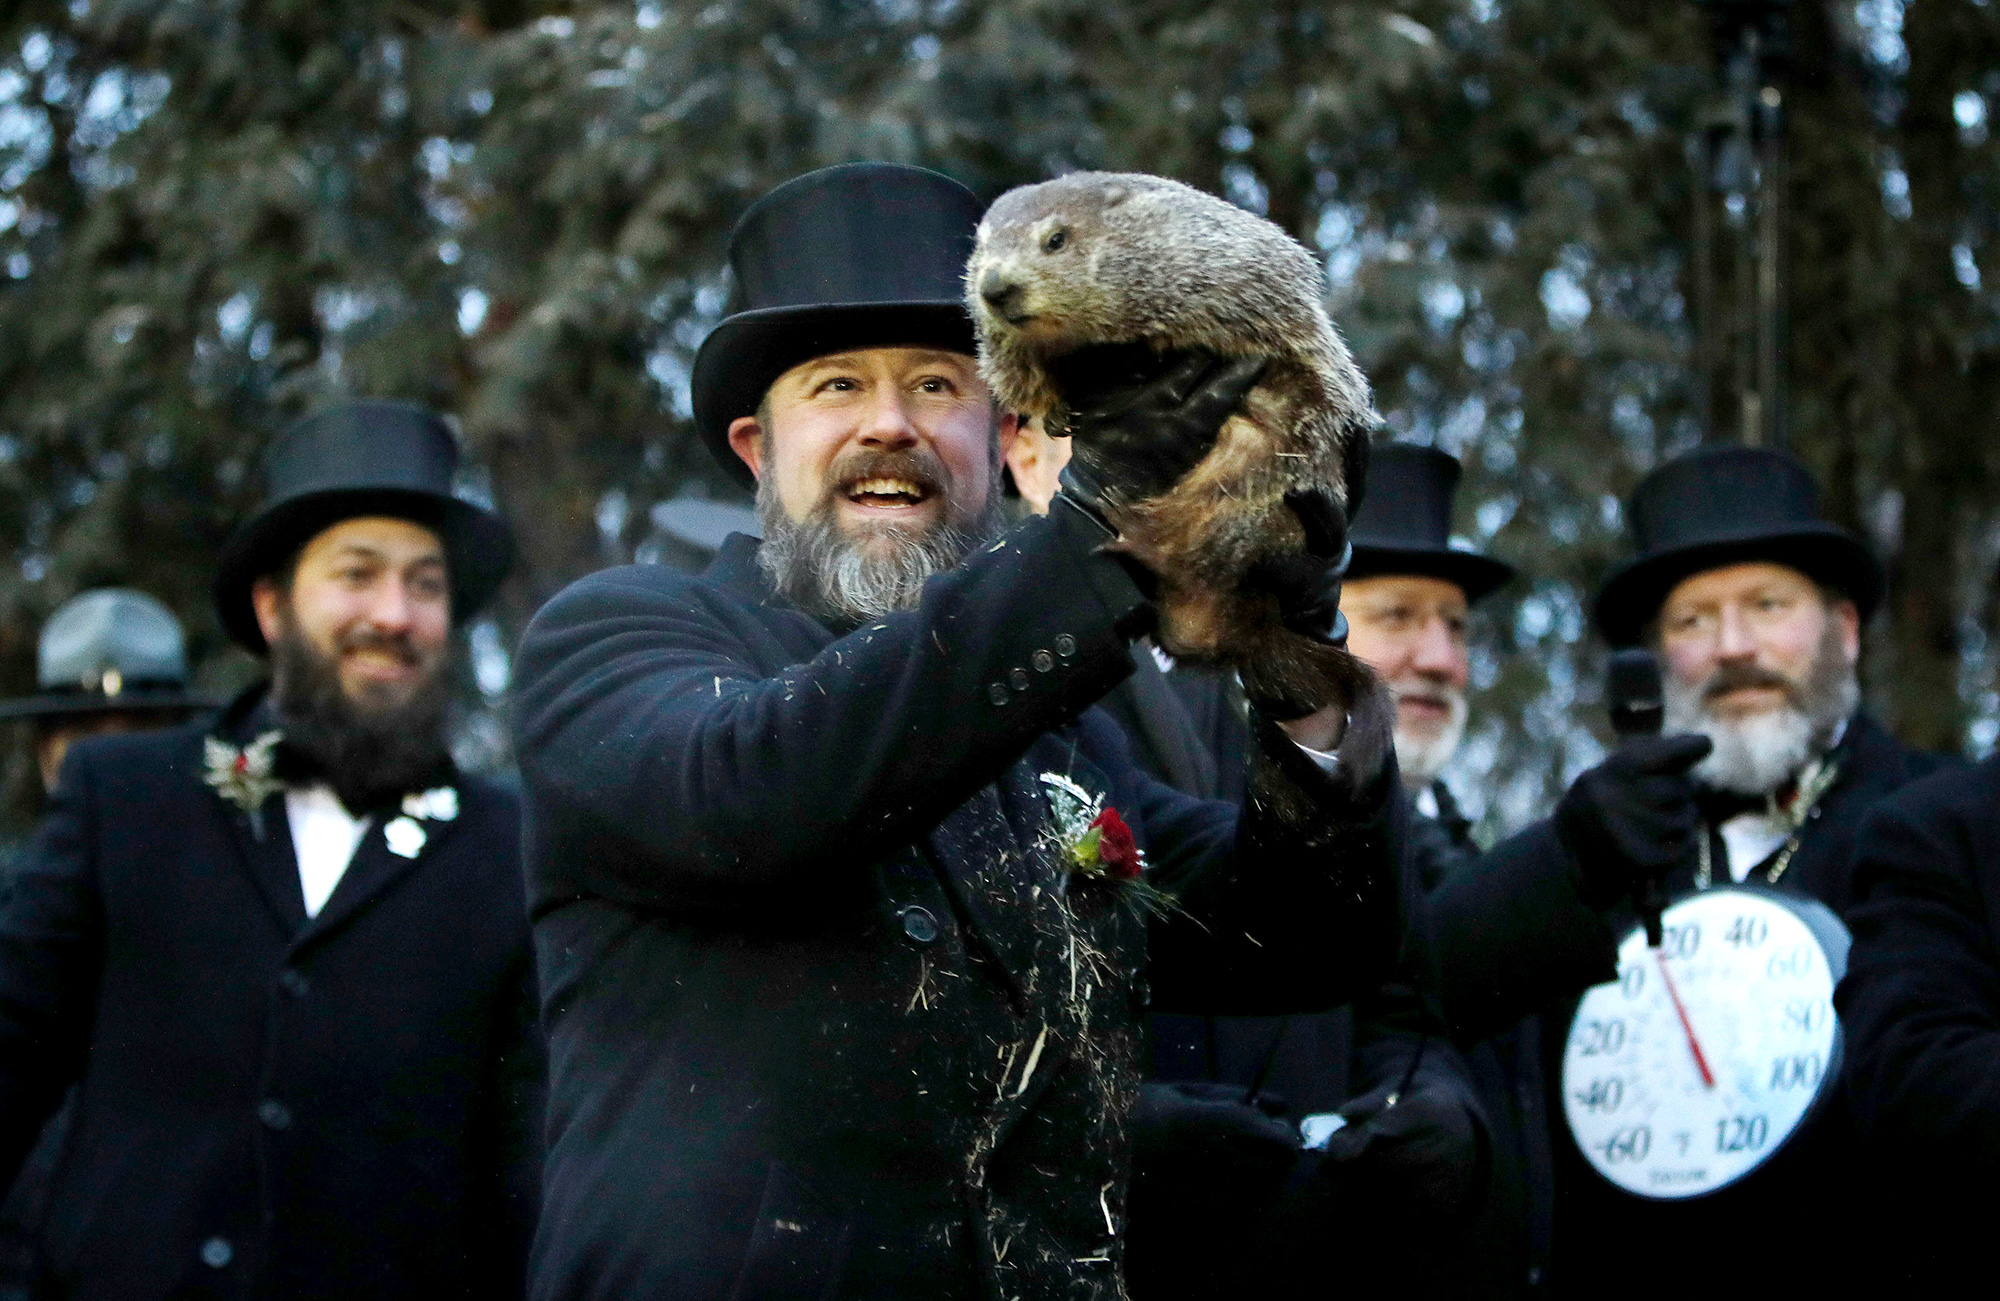 Bye Bye Winter?Punxsutawney Phil Predicts an Early Spring on Groundhog Day